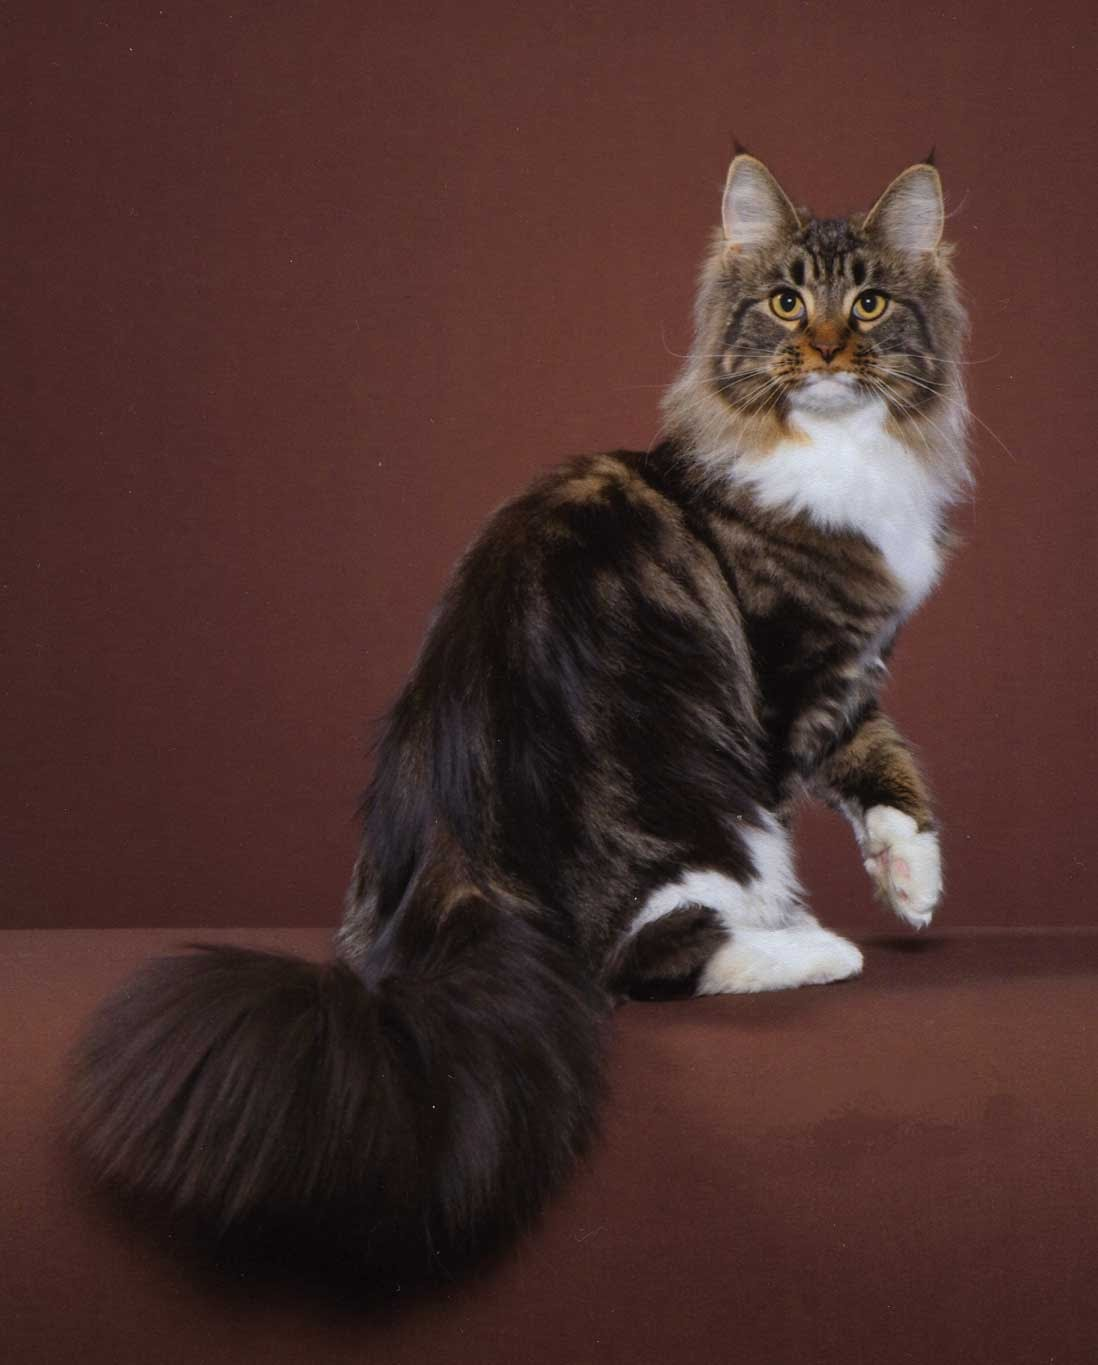 Maine Coon Cats For Sale In Iowa : maine, KatTails, Maine, Coons